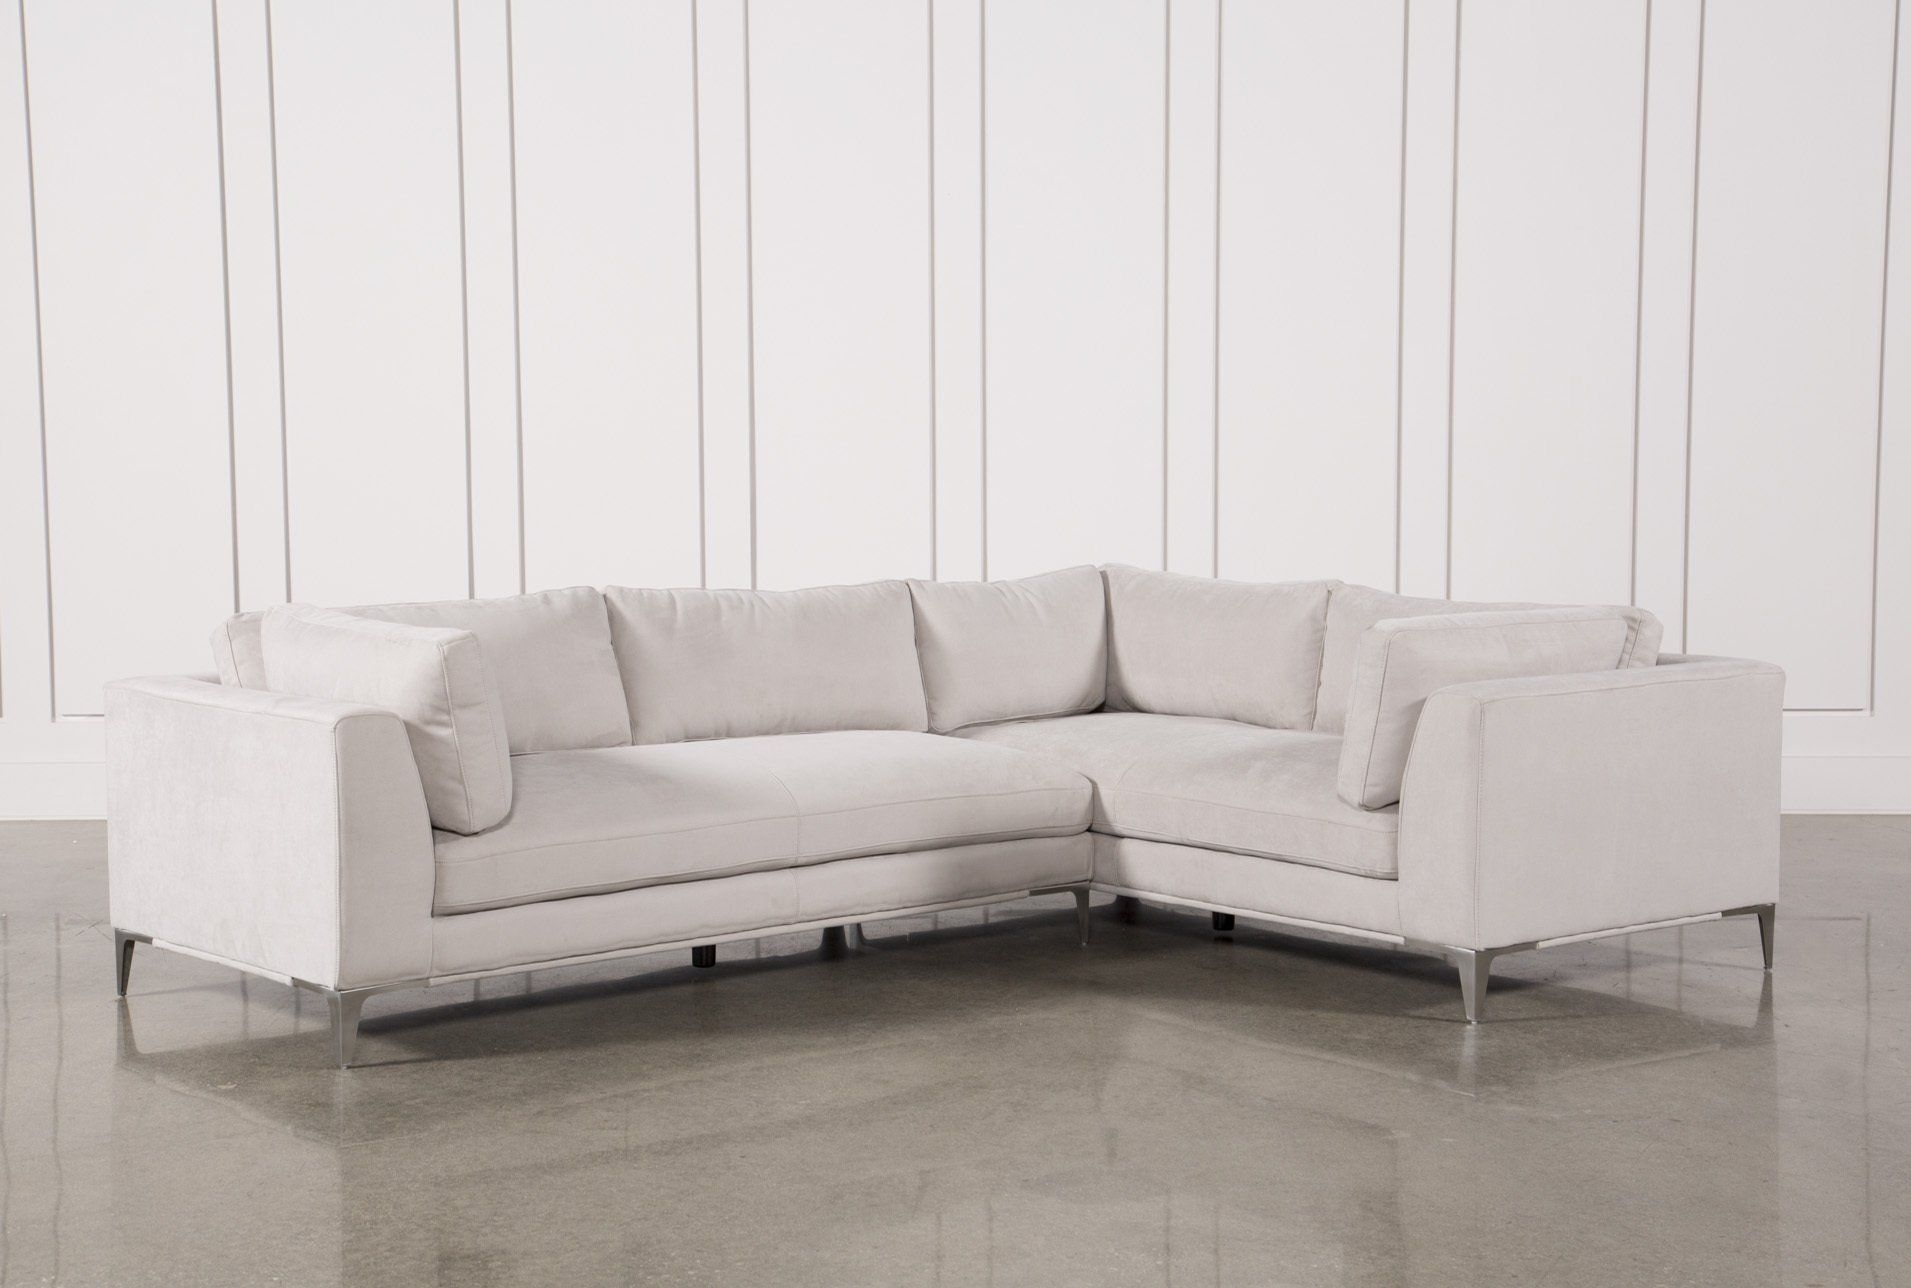 Cosmos Grey 2 Piece Sectional W/laf Chaise | Quilling | Pinterest Throughout Cosmos Grey 2 Piece Sectionals With Laf Chaise (Image 8 of 25)